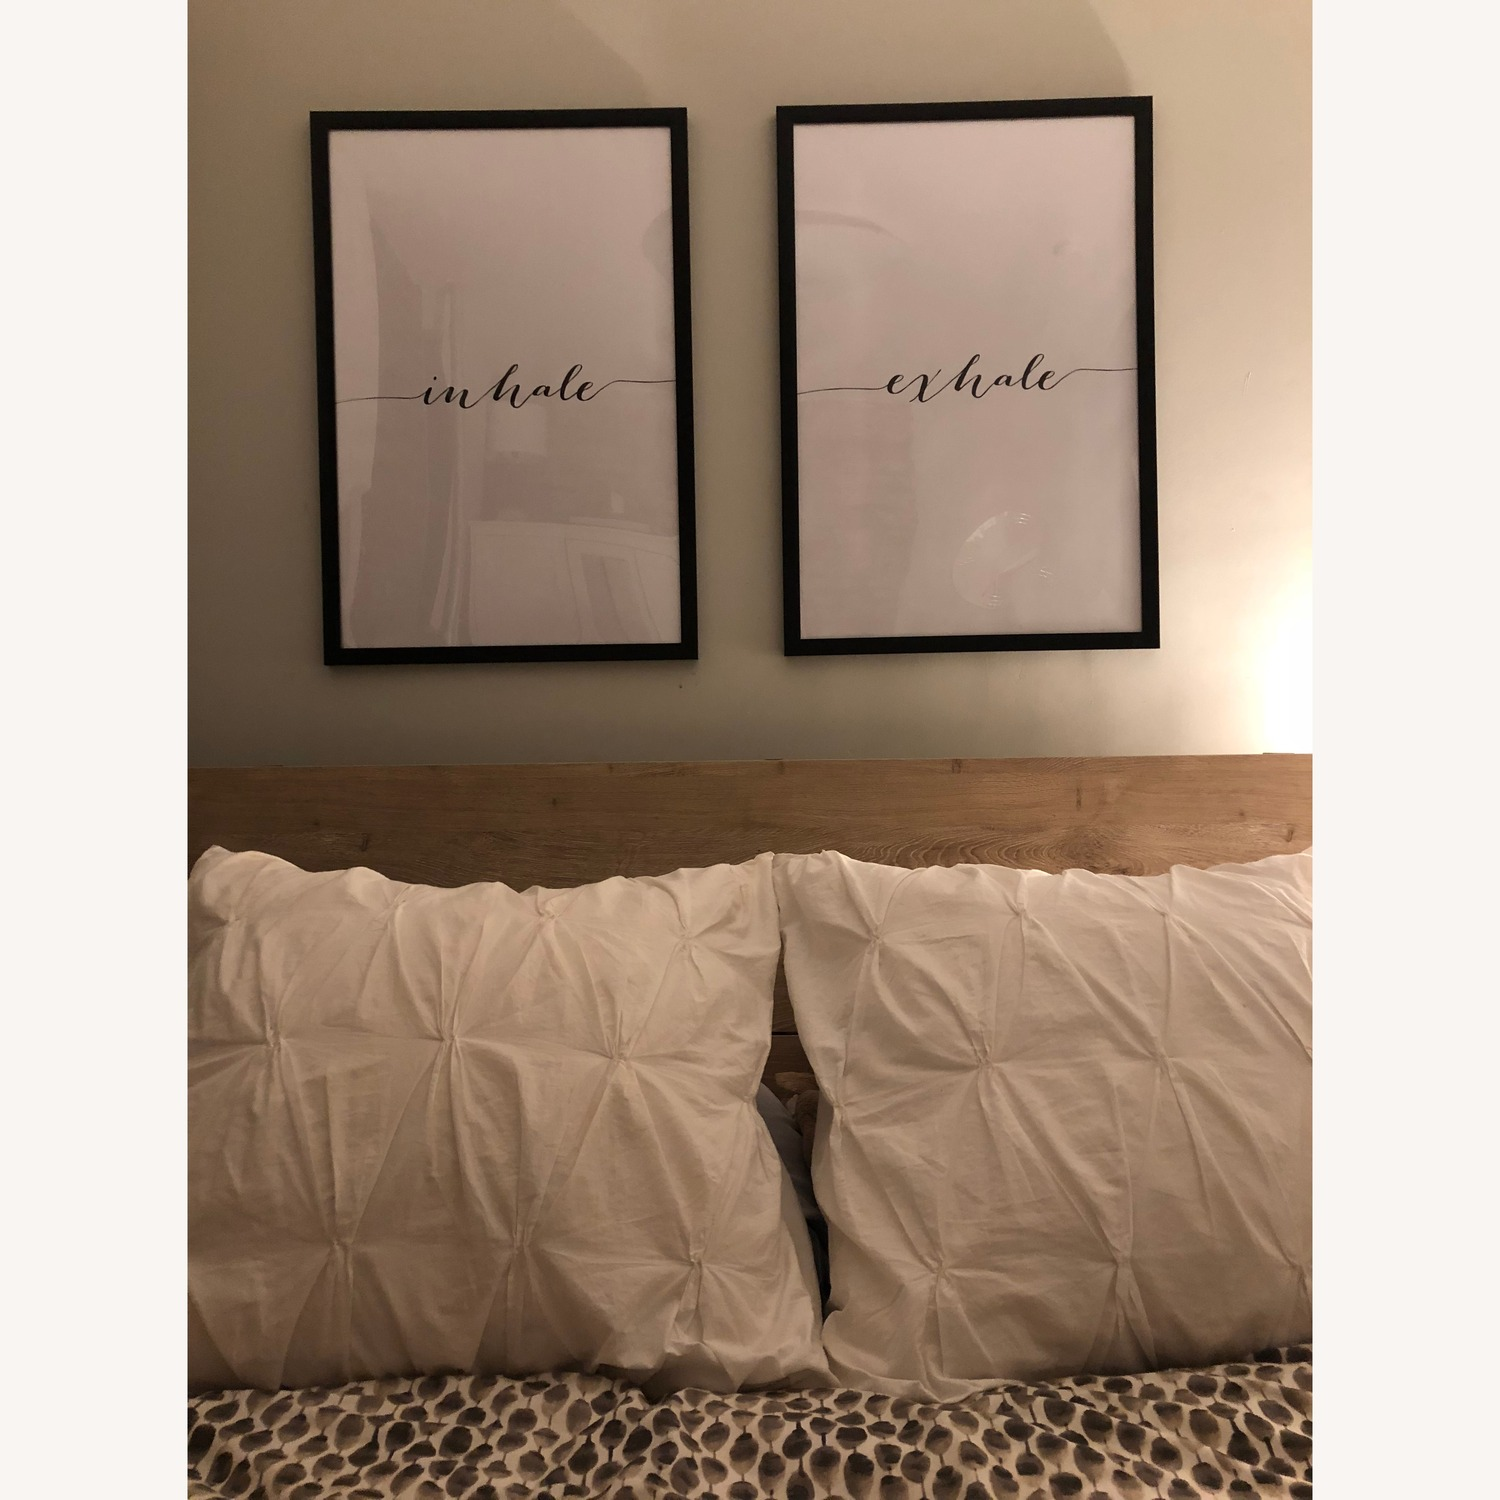 Inhale Exhale Framed Prints